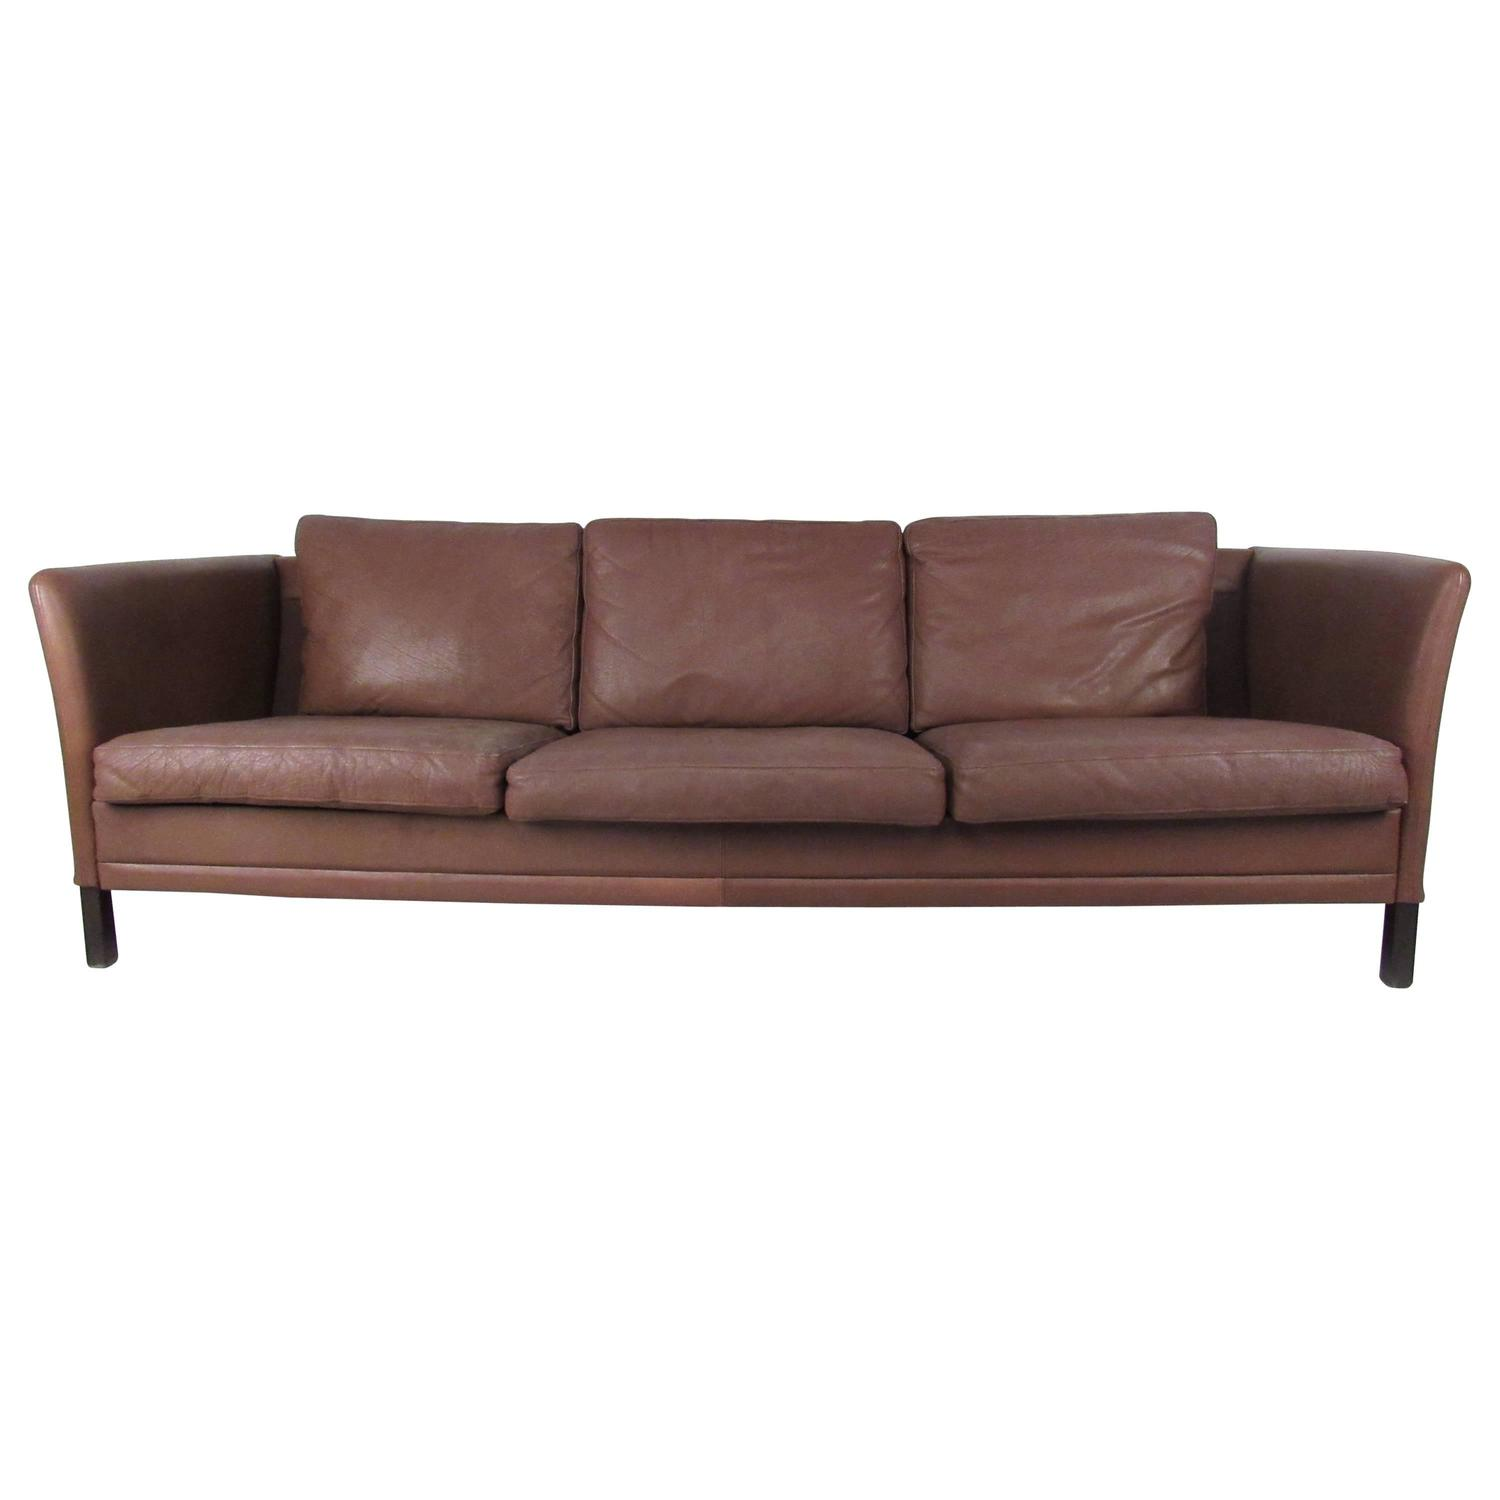 Impressive mid century danish modern leather sofa for sale for Mid century sectional sofa for sale